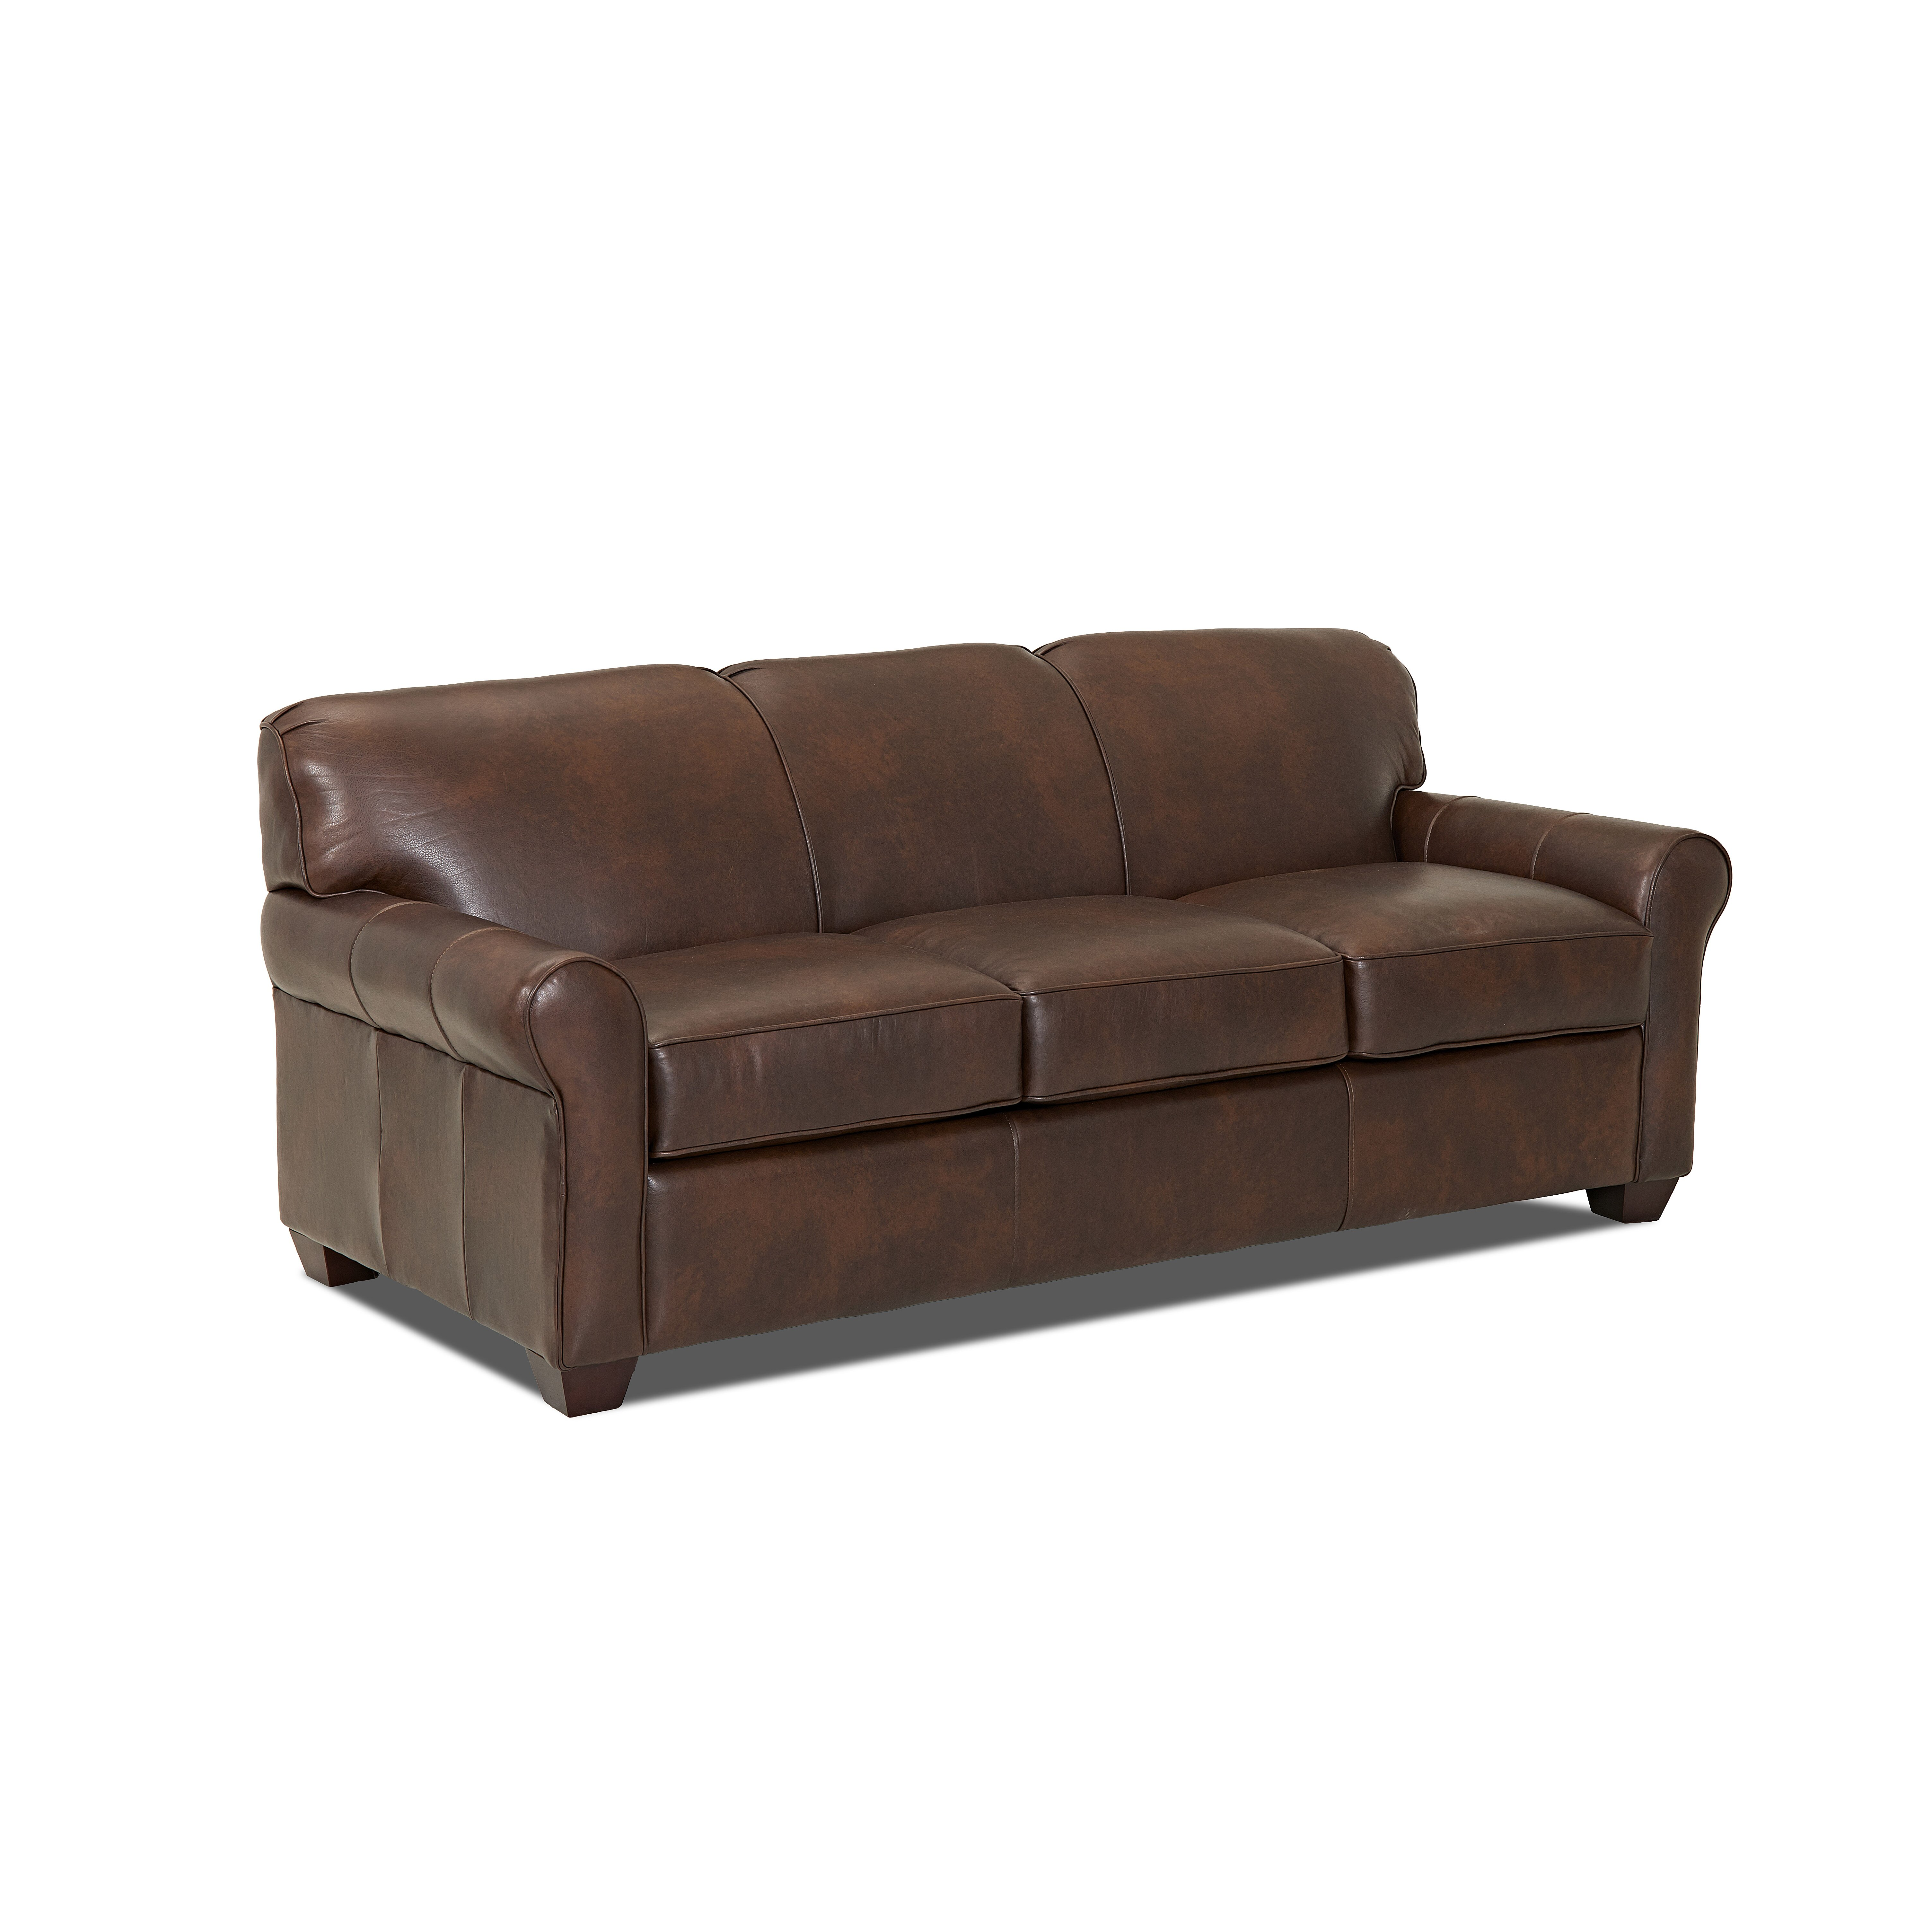 Unique Leather Sofas: Wayfair Custom Upholstery Jennifer Leather Sofa & Reviews